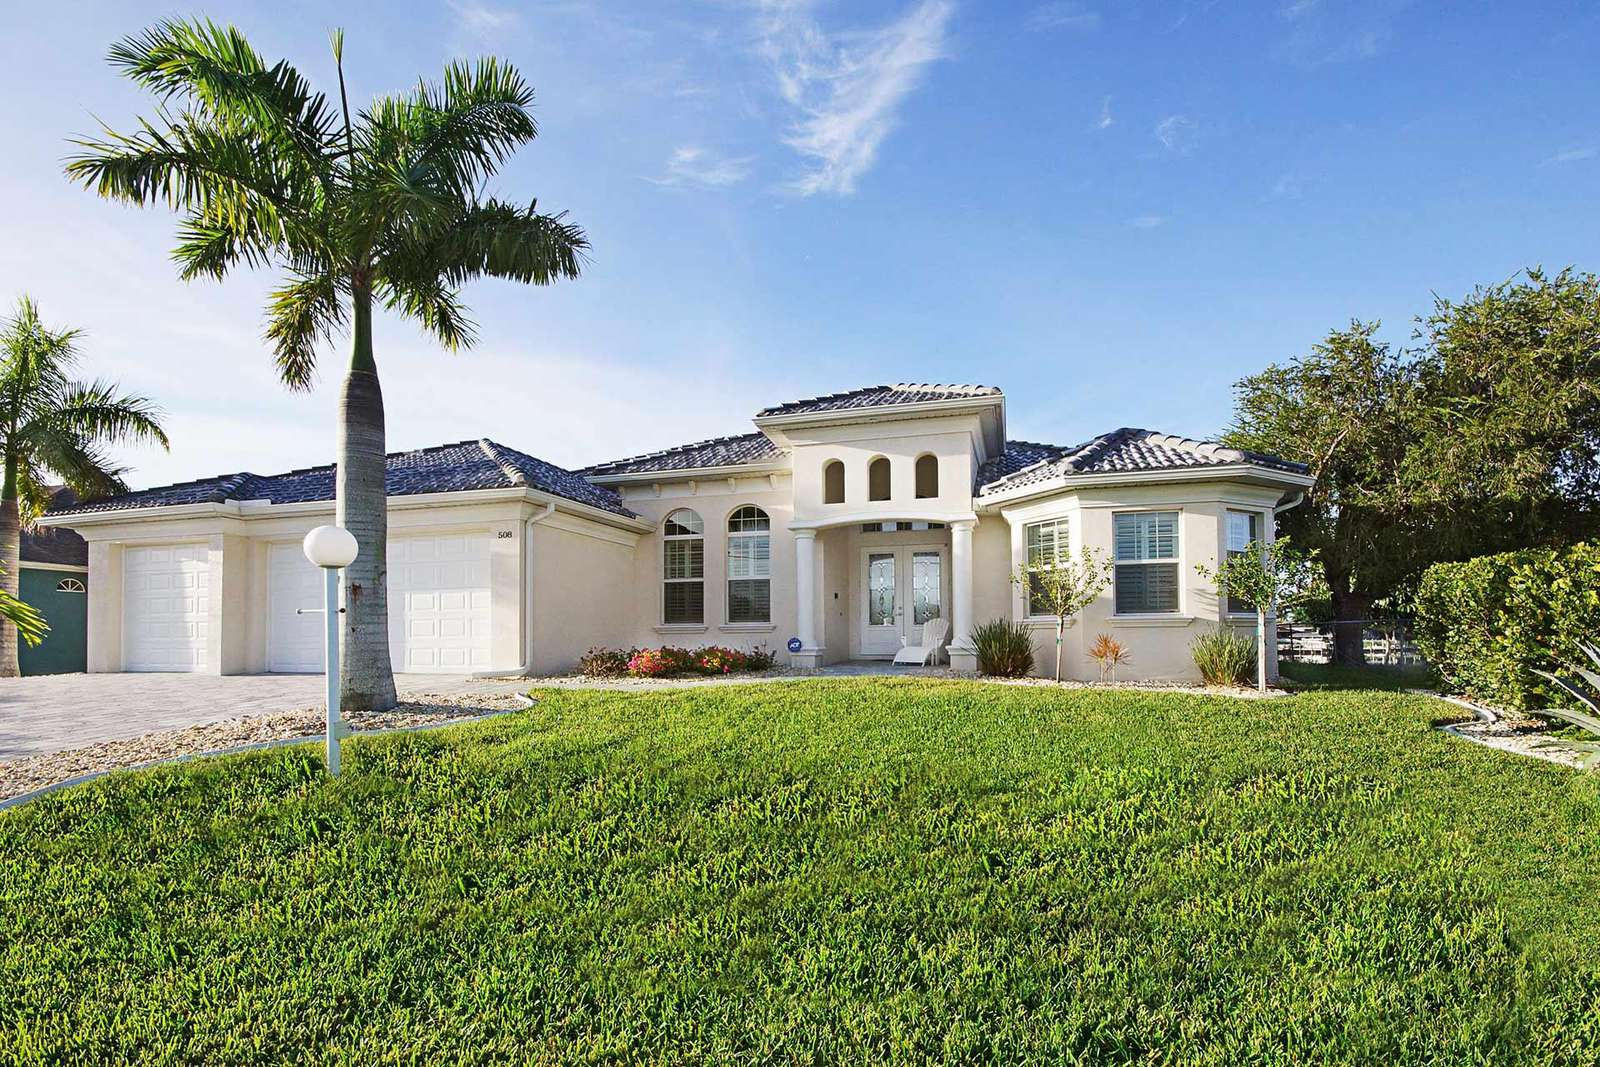 Wischis Florida Vacation Home - Blissful Bay